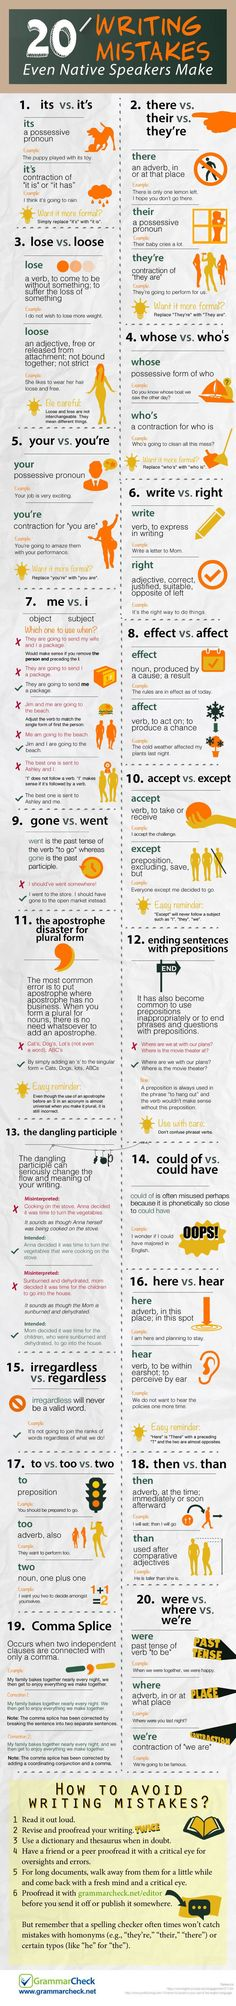 #infographic English language mistakes even native speakers make